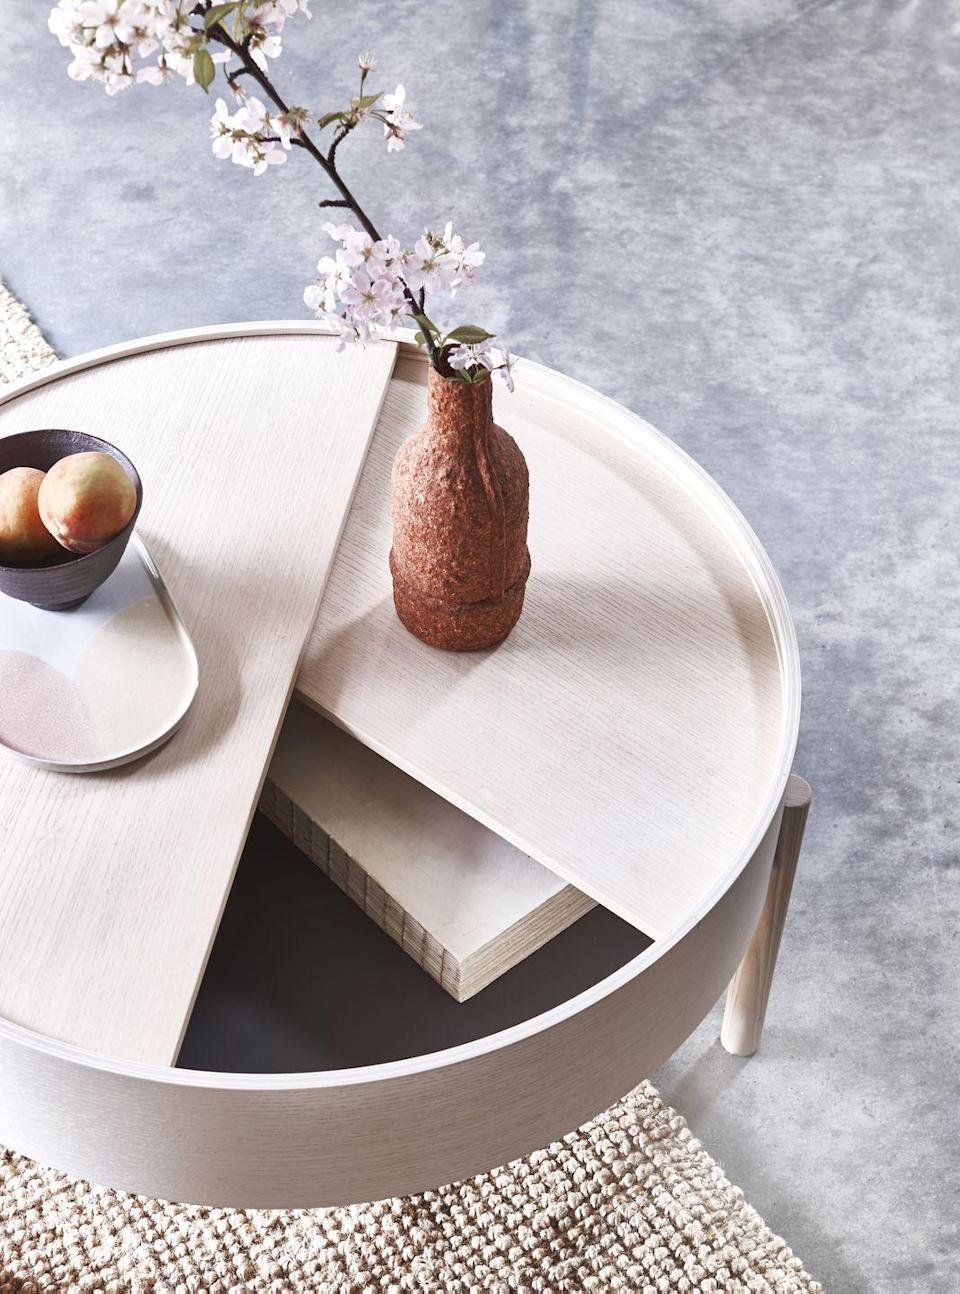 """<p>Surrounding yourself with natural materials is sure to increase a sense of <a href=""""https://www.housebeautiful.com/uk/health-wellbeing/"""" rel=""""nofollow noopener"""" target=""""_blank"""" data-ylk=""""slk:wellbeing"""" class=""""link rapid-noclick-resp"""">wellbeing</a> in the home. Jute rugs, pale washed woods and even vessels made from paper are all tactile and visually appealing.</p>"""